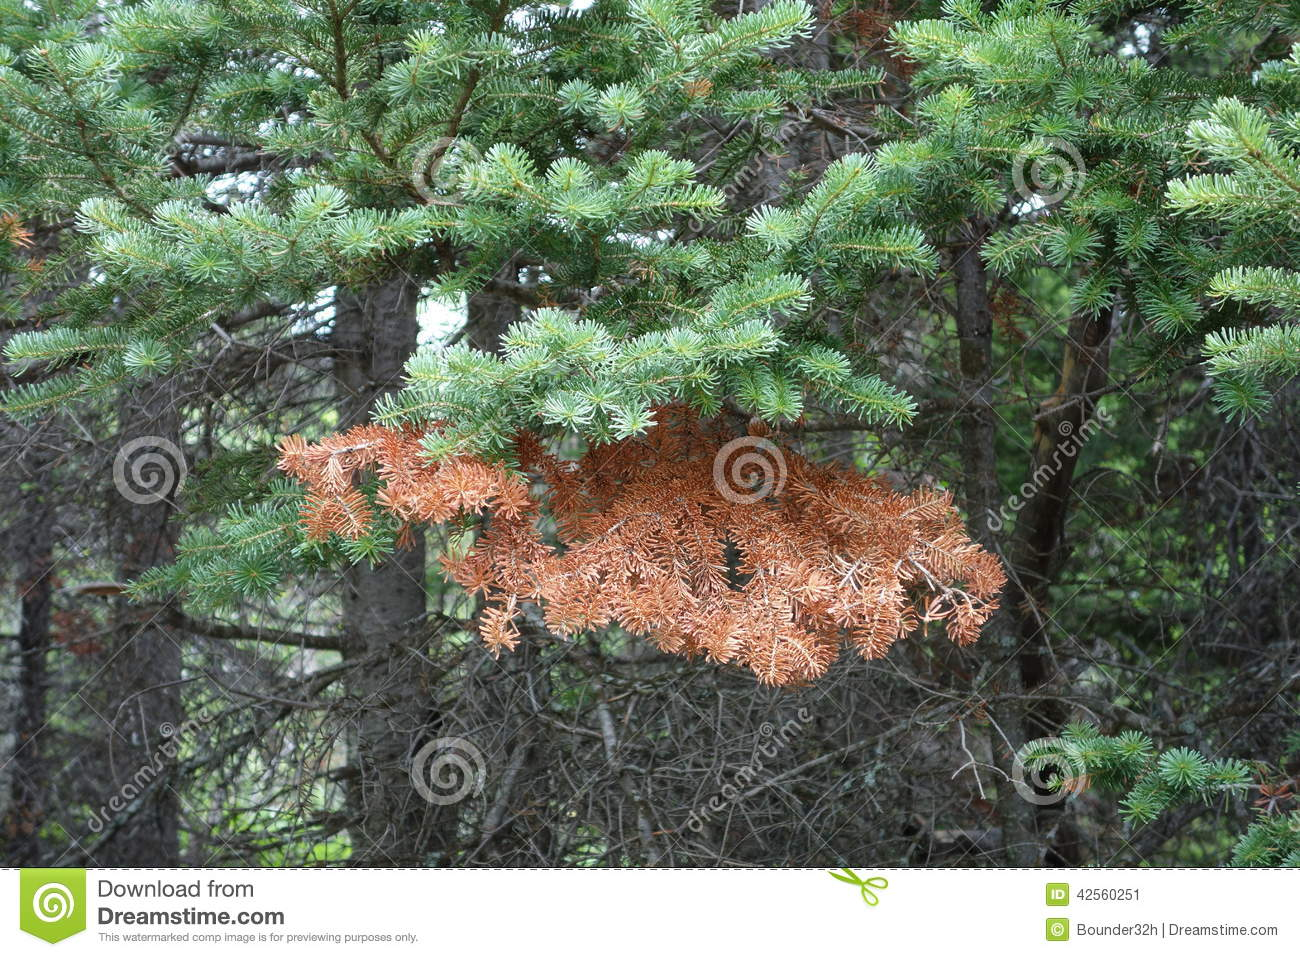 A Pine Tree Branch Half Alive And Half Dead In A Forest Stock Image